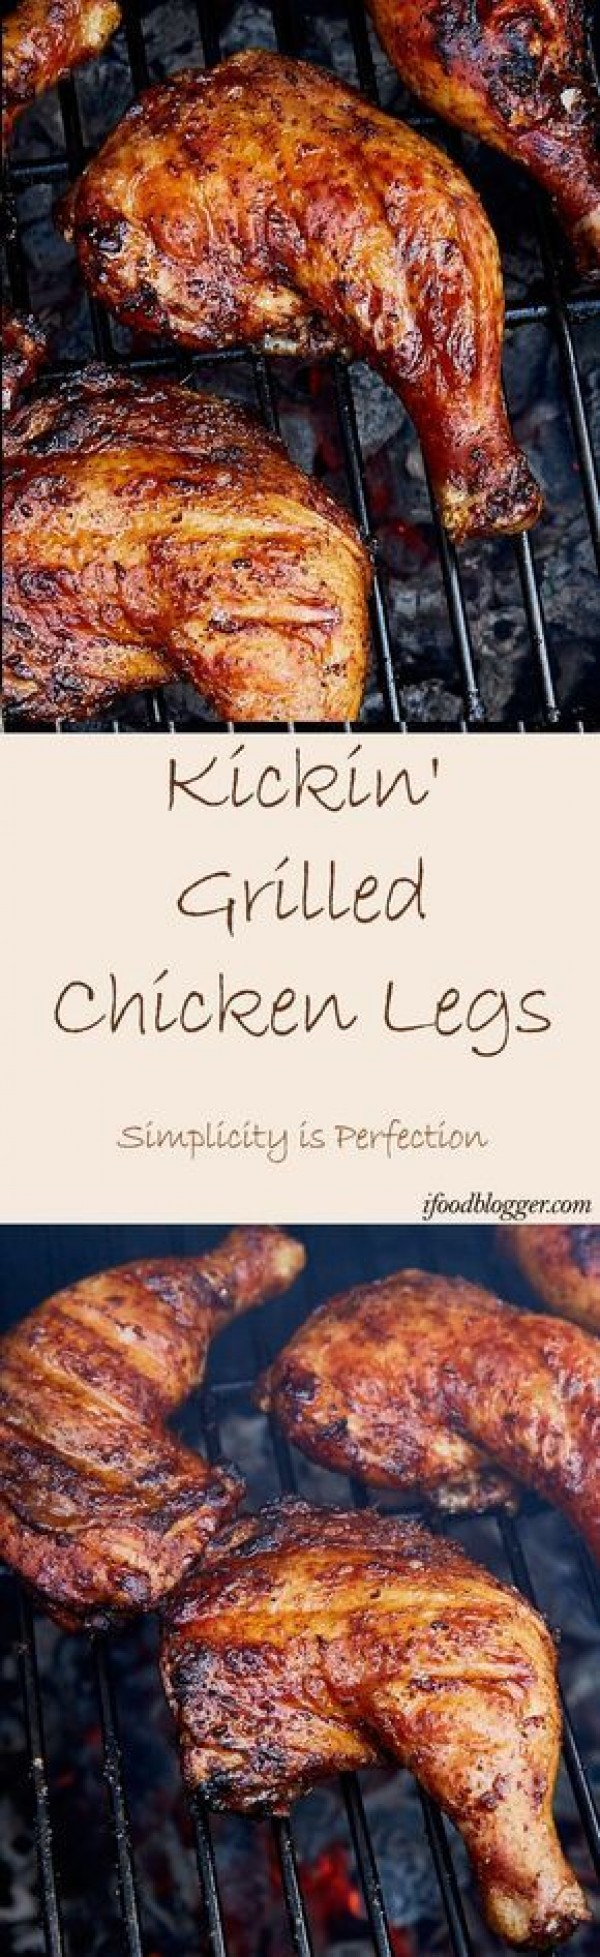 50 Best Chicken Recipes Ever - Check out this recipe for grilled chicken legs. Yummy! #RecipeIdeas @recipes_to_go